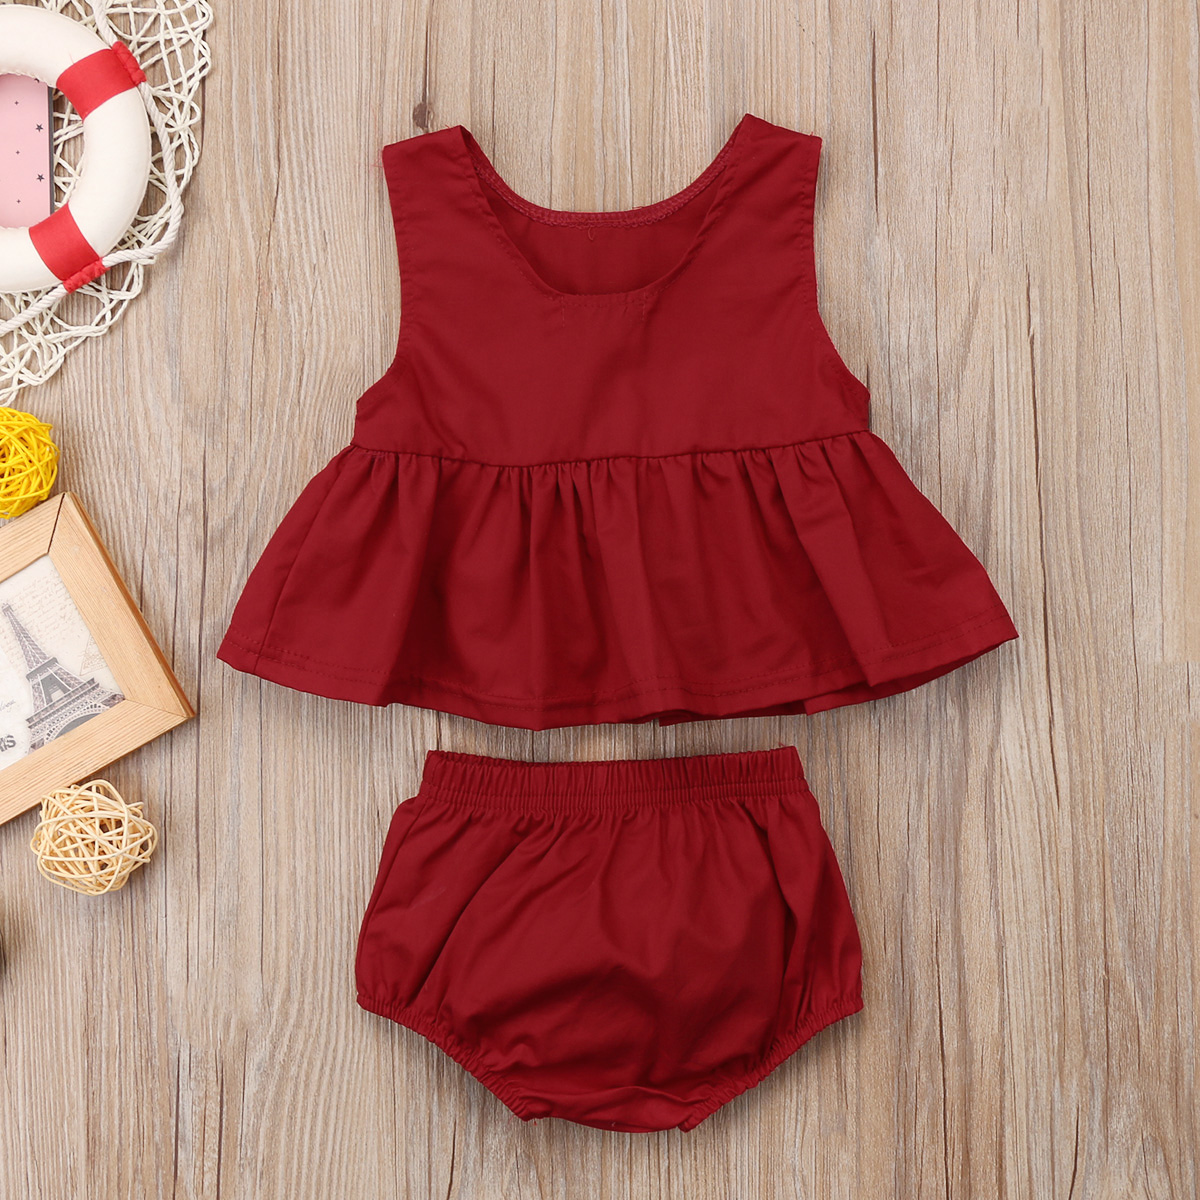 2PCs Baby Girls Clothes Crop Top Dress Tee Vest +Shorts Pants Casual Outfits Set New